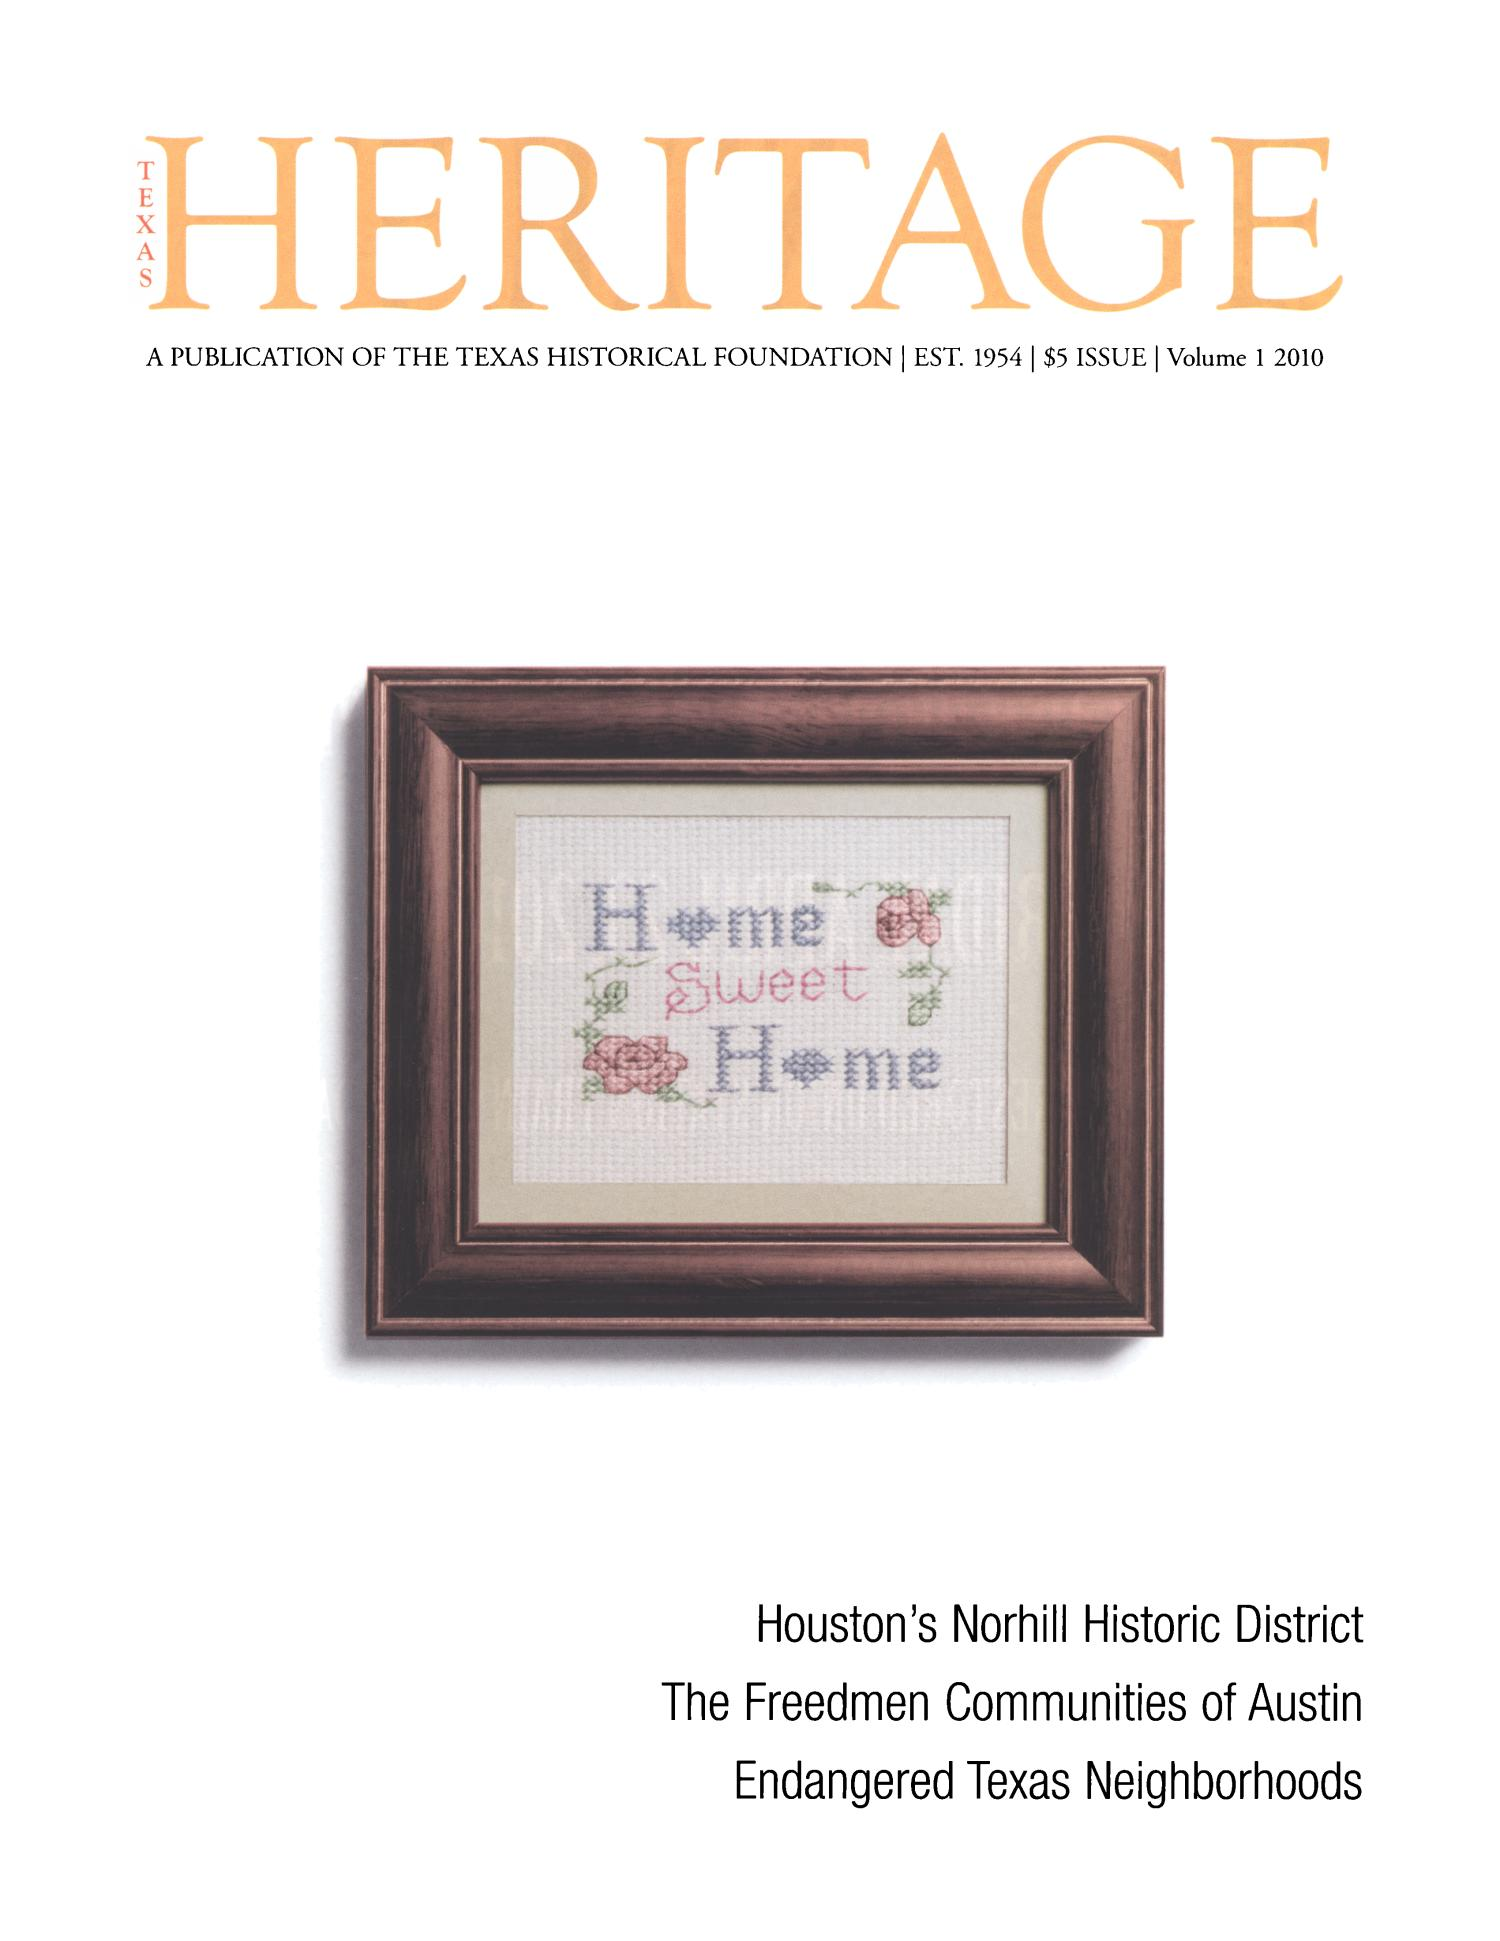 Heritage, 2010, Volume 1                                                                                                      Front Cover